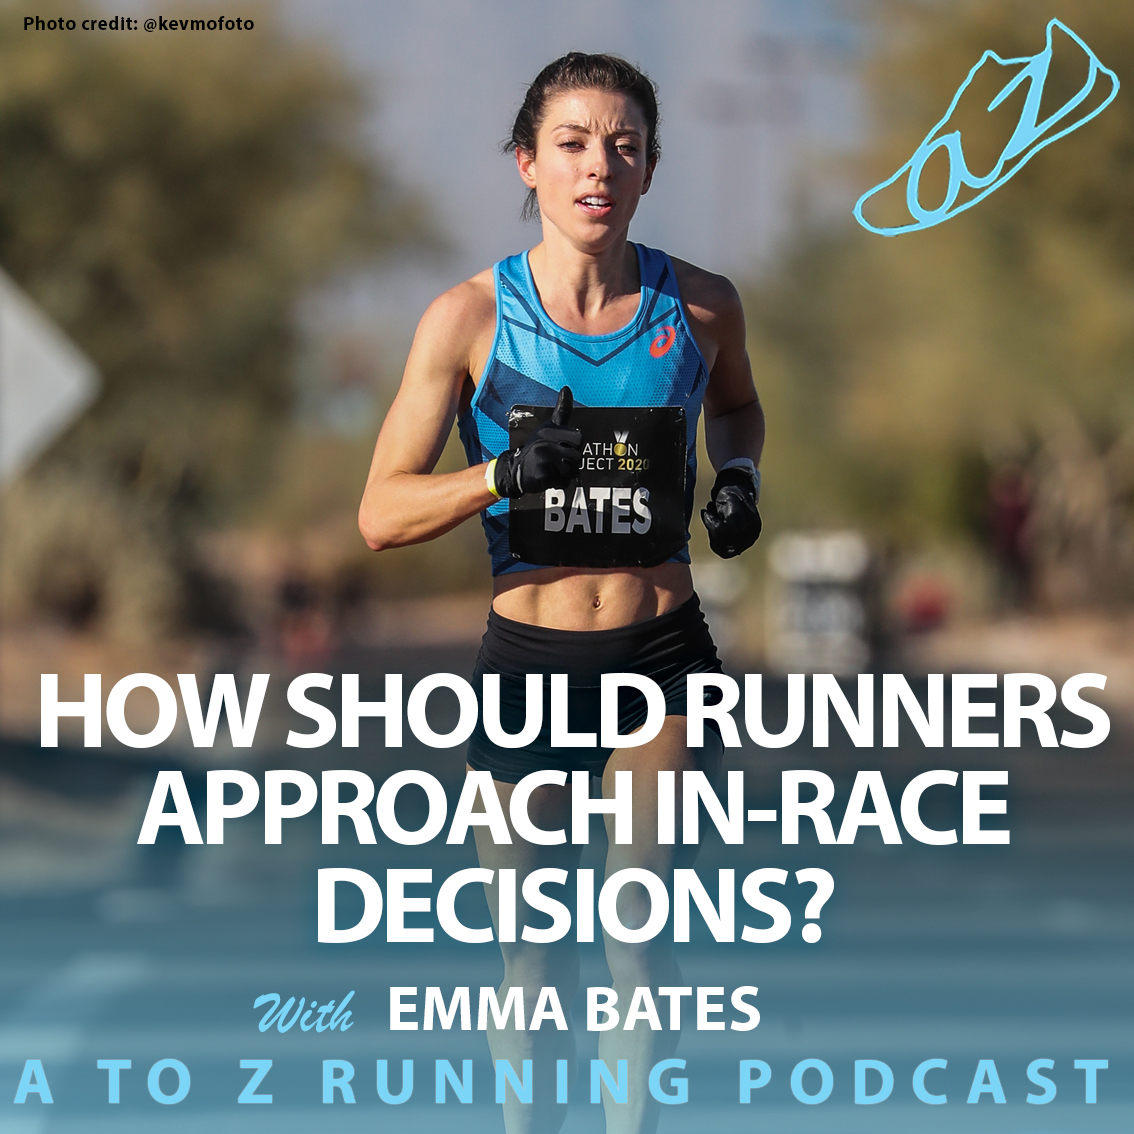 Emma Bates on the A to Z Running Podcast